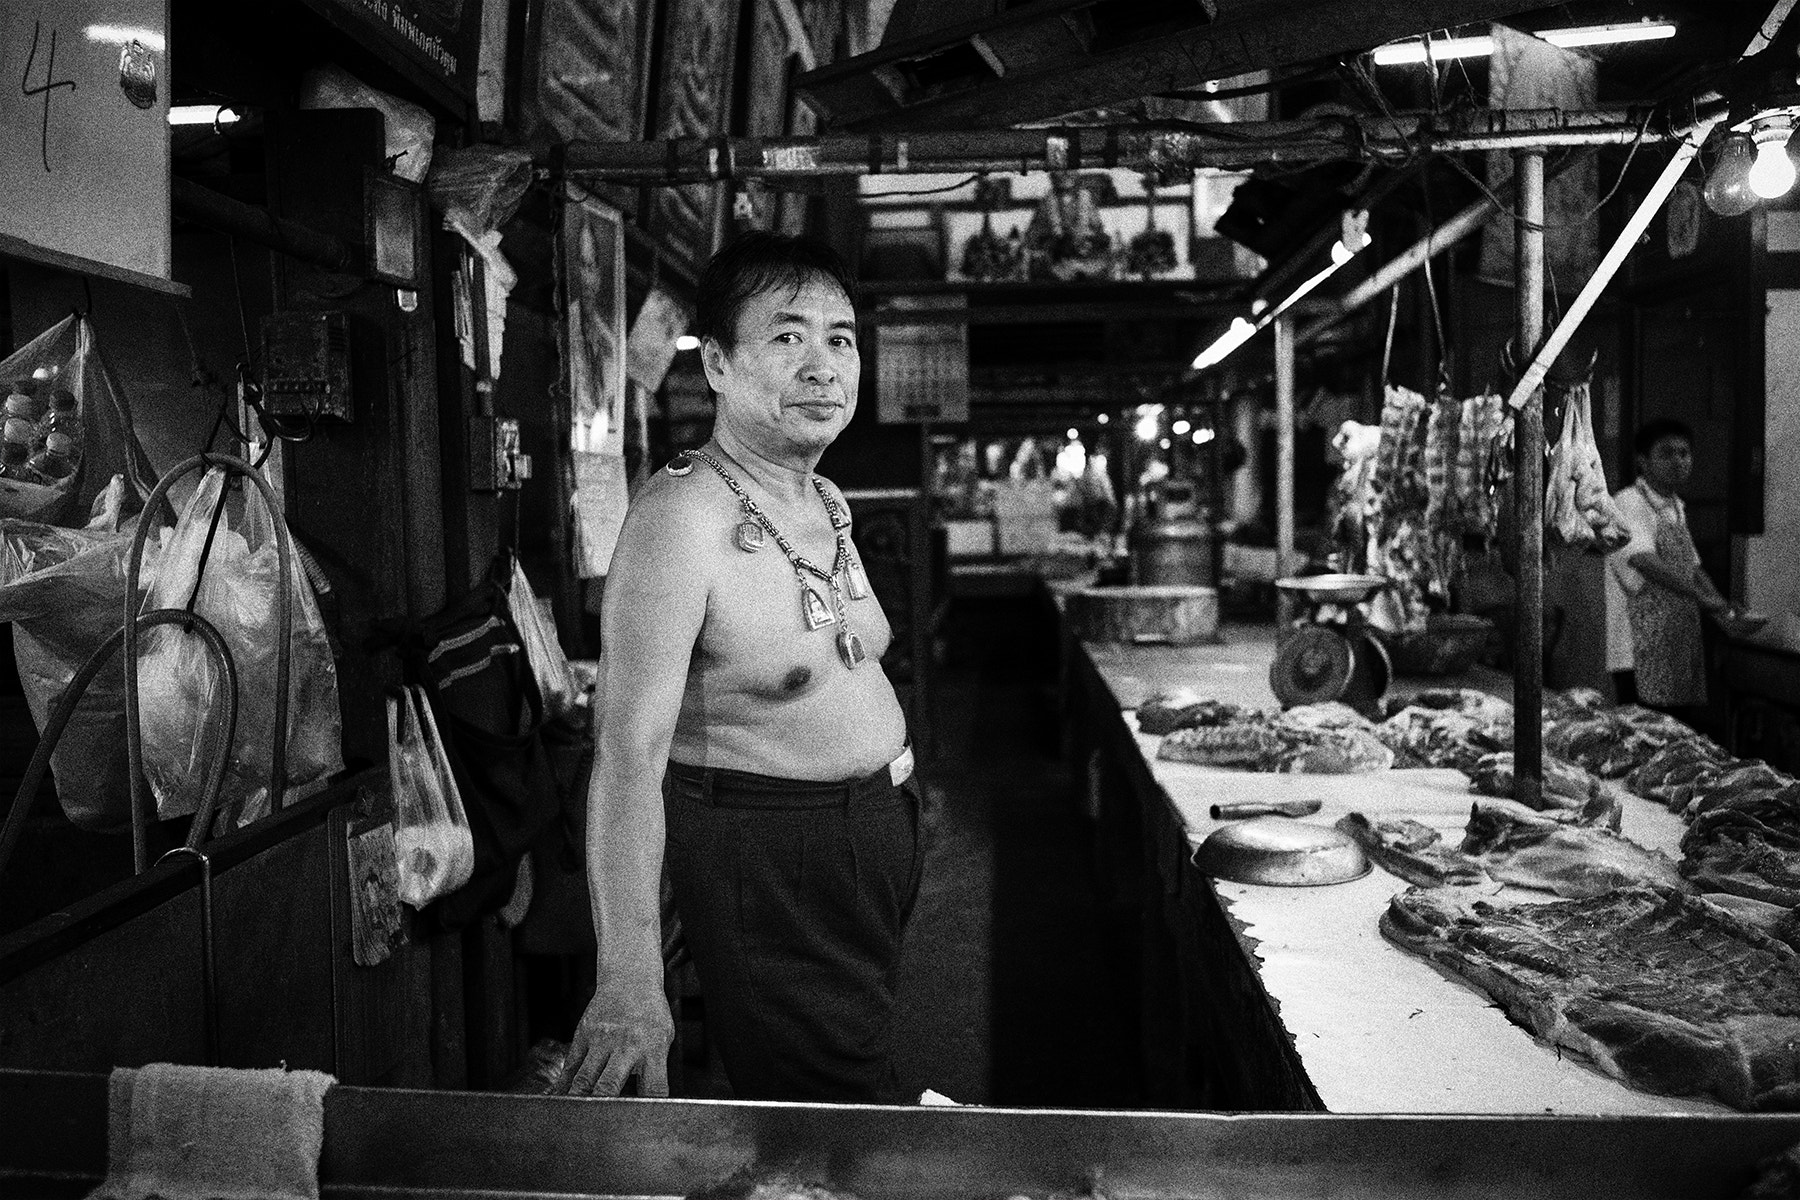 Photograph klong toey market, 2014 by  momofuku on 500px